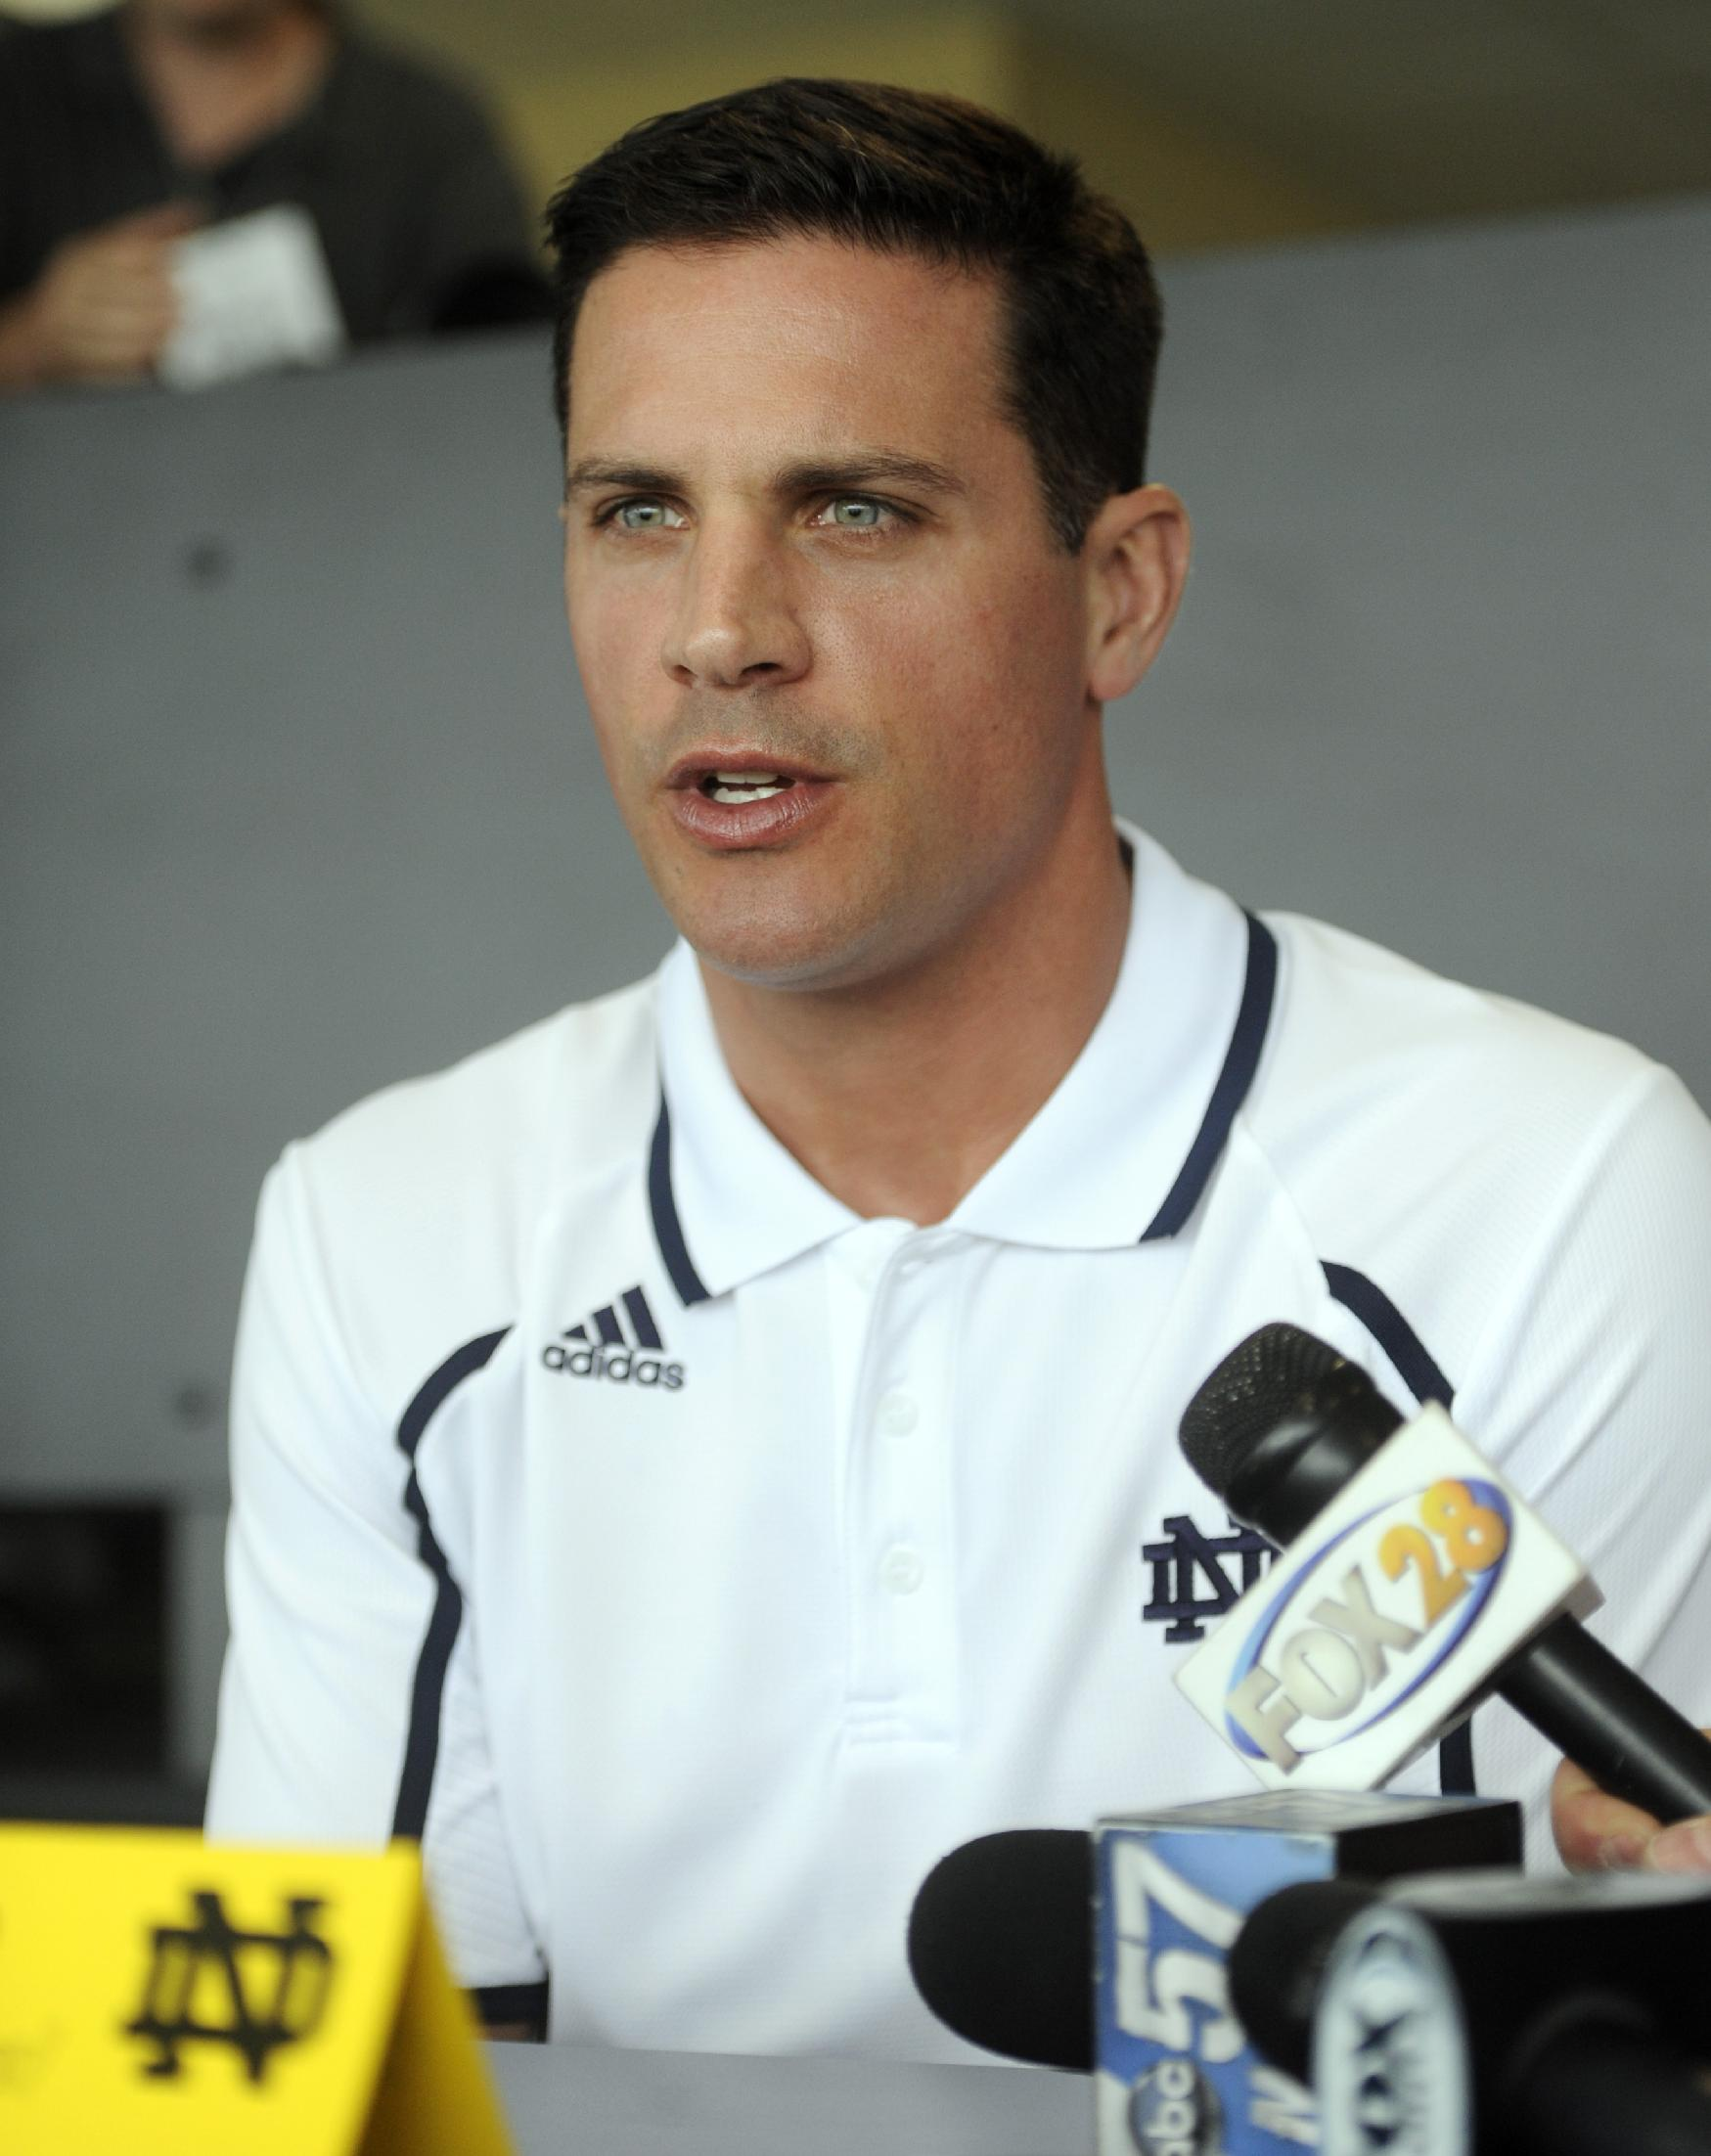 FILe - In this Aug. 22, 2013 file photo, Notre Dame defensive coordinator Bob Diaco answers questions from the media at NCAA college football media day in South Bend, Ind. Connecticut has hired Notre Dame defensive coordinator Bob Diaco as its football coach. The school announced the move early Thursday morning, Dec. 12, 2013